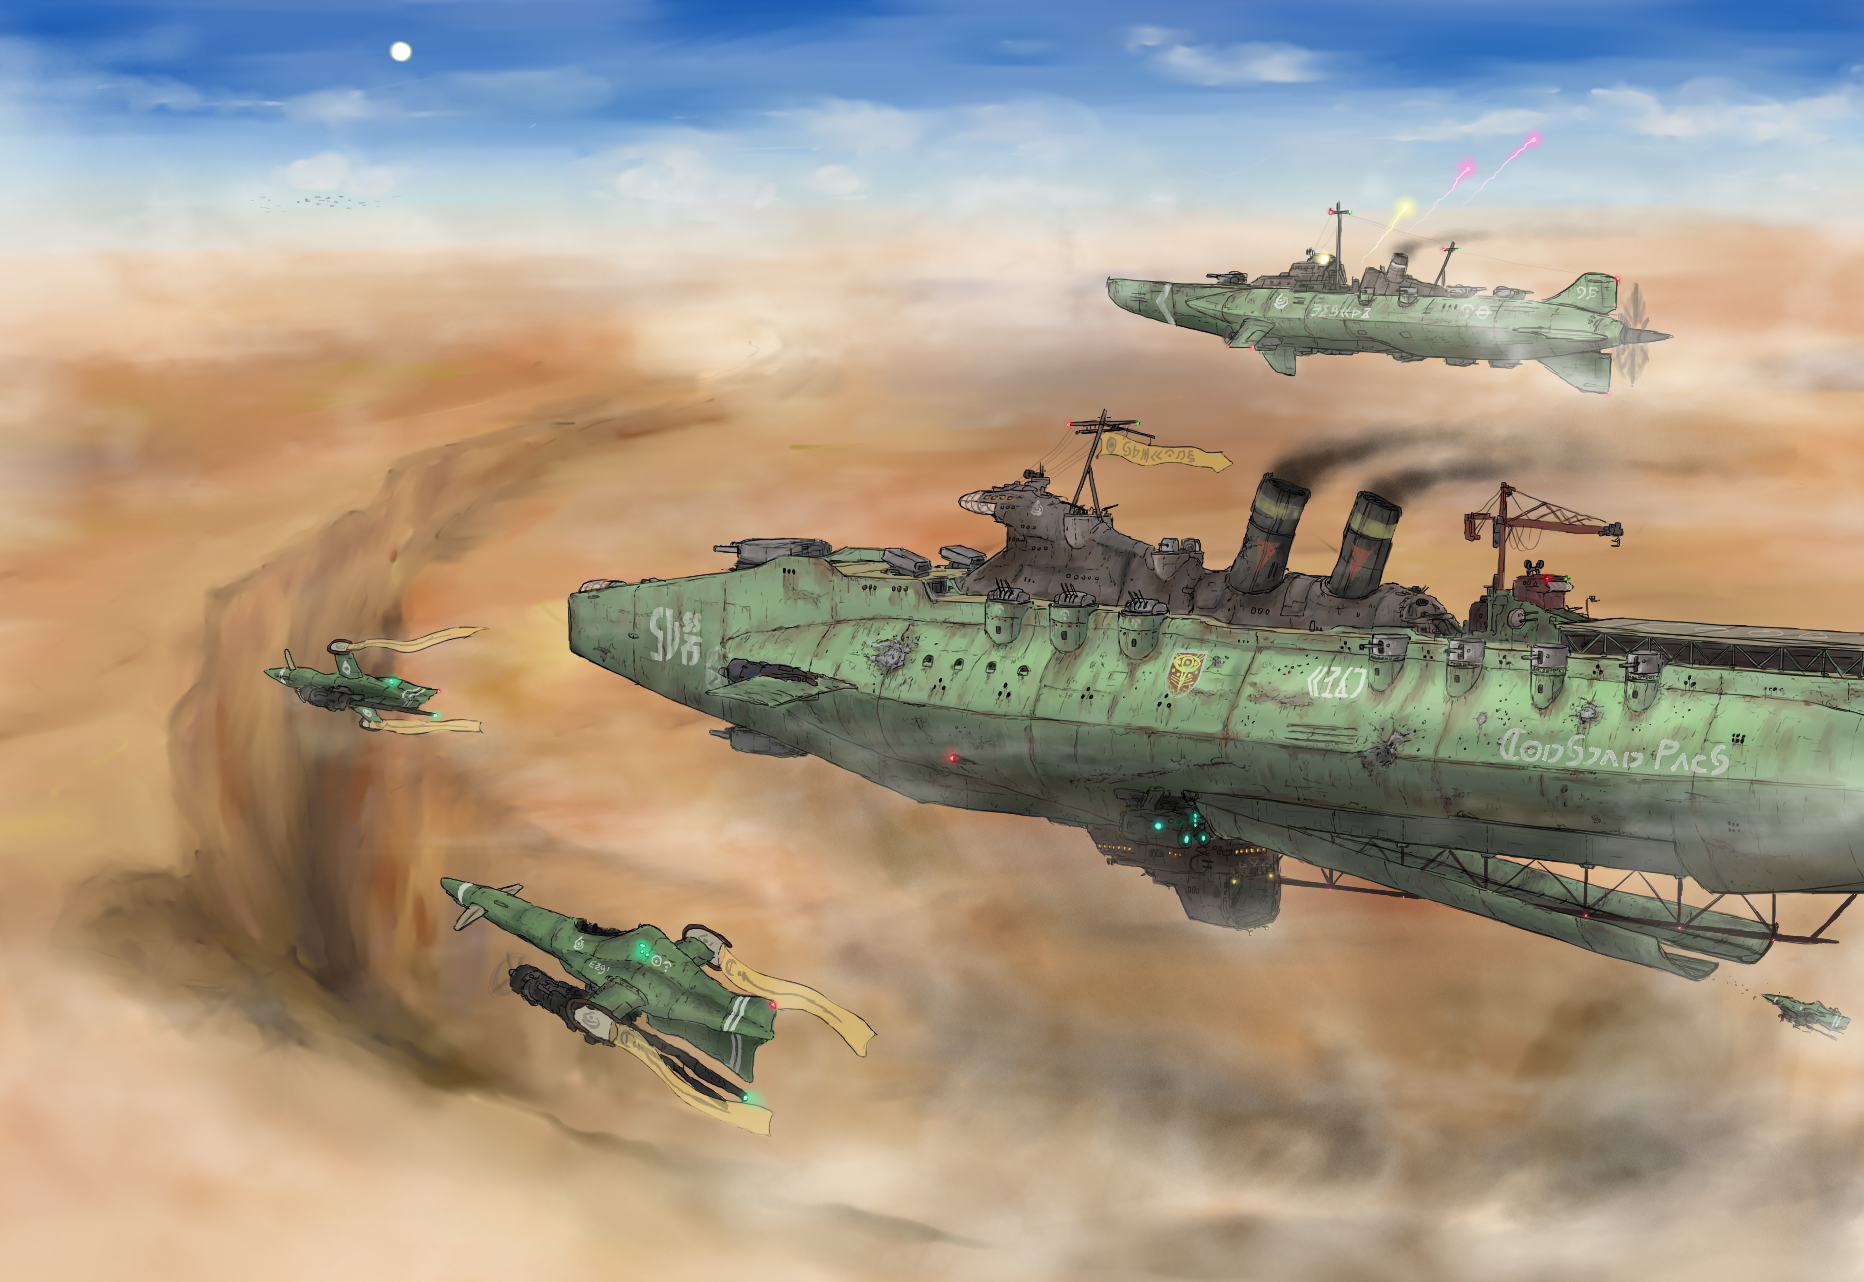 Old-fashioned Carrier, destroyer and intercepters by Waffle0708